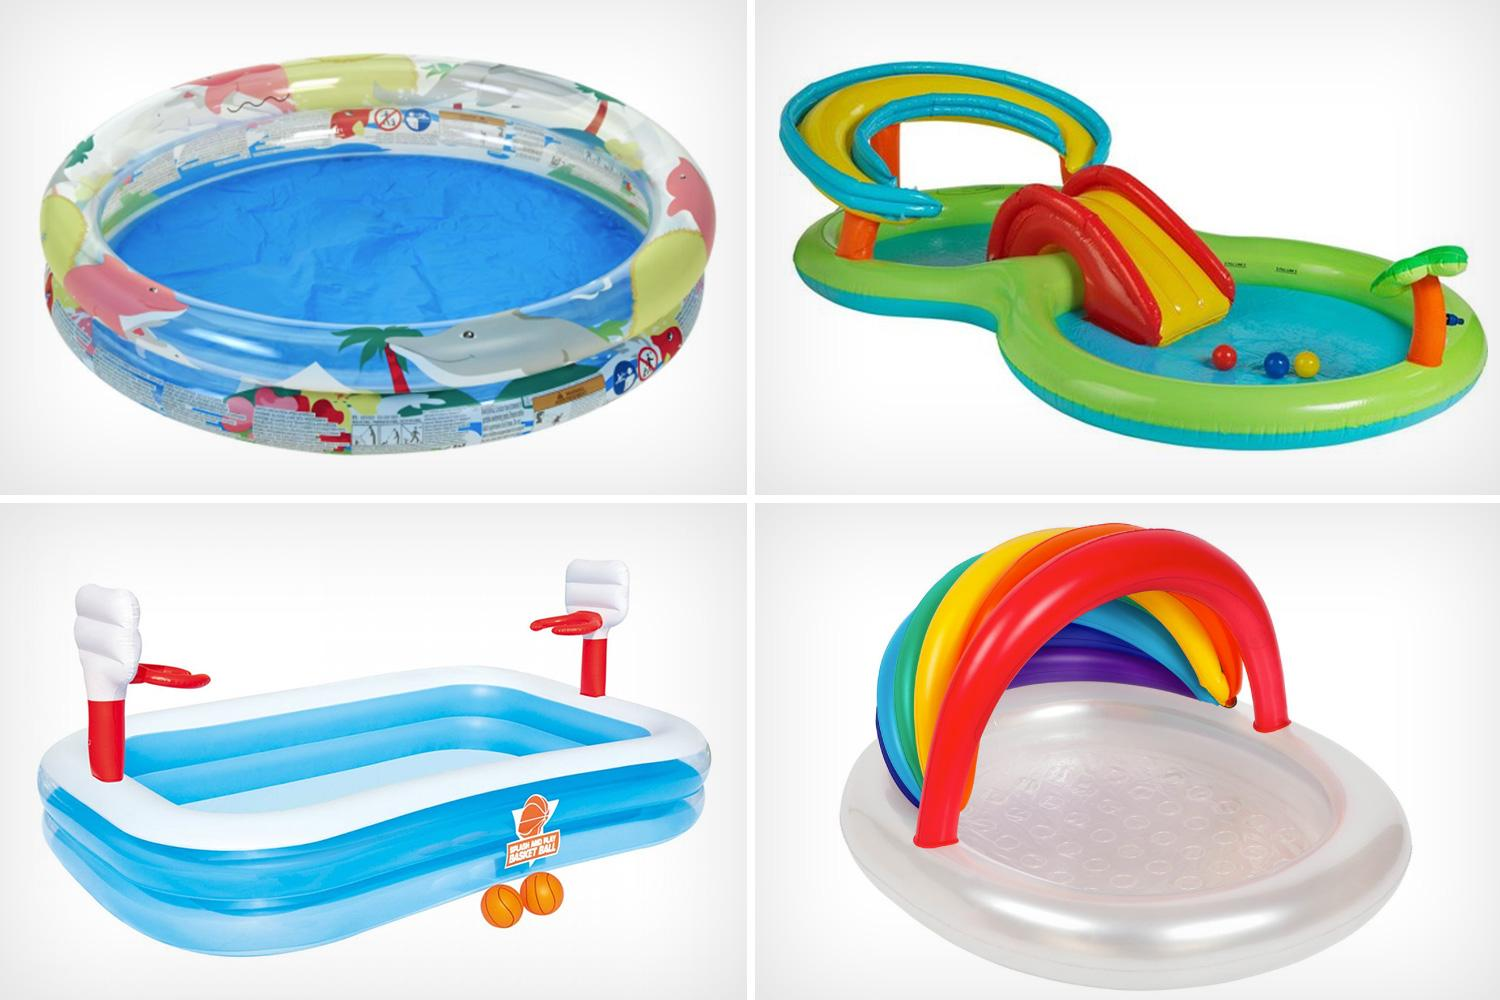 Jacuzzi Pool Argos Best Paddling Pools 2019 The Sun Uk